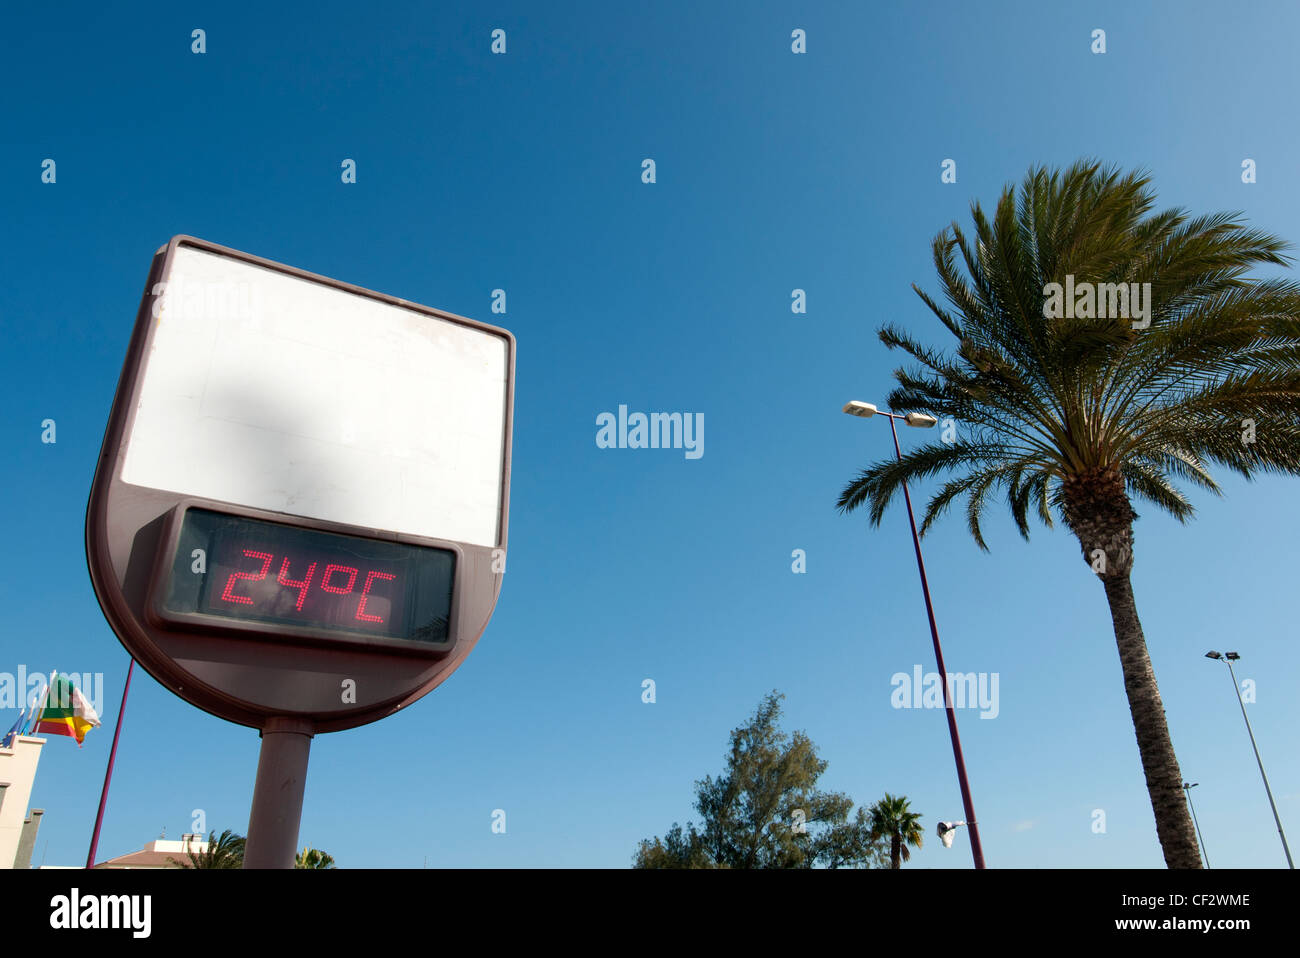 24 degrees celsius street sign giving temperature - Stock Image